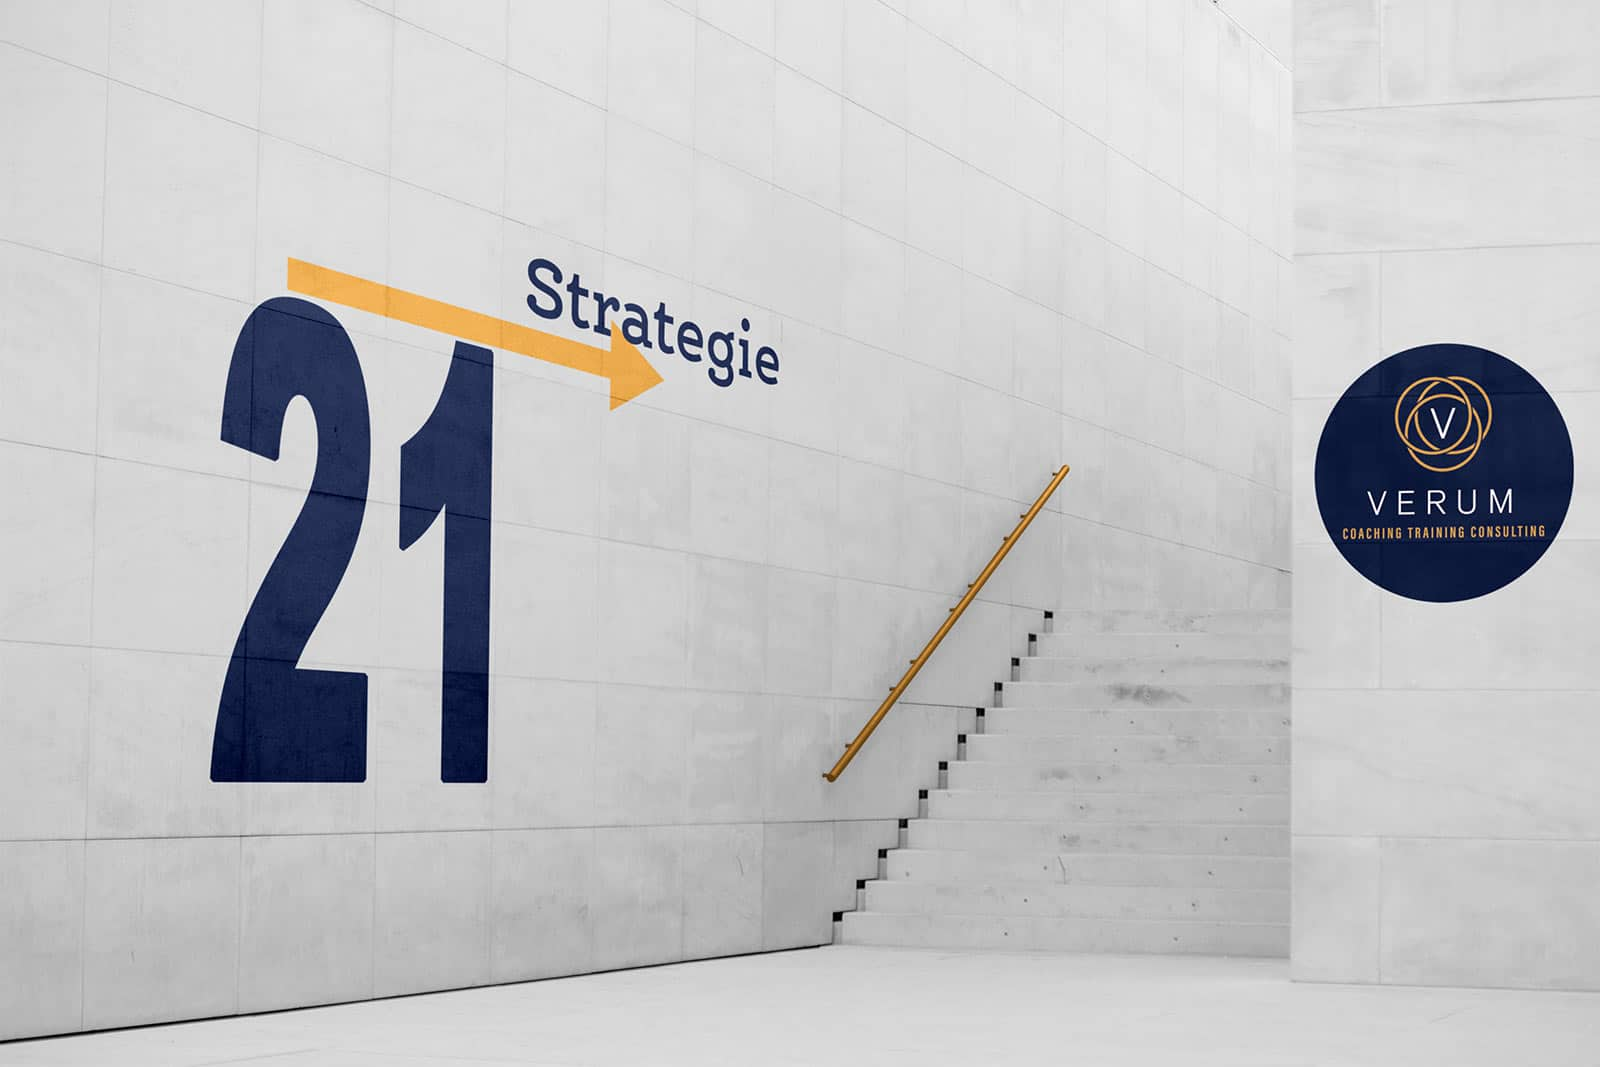 VERUM GmbH Consulting - Strategie 2021